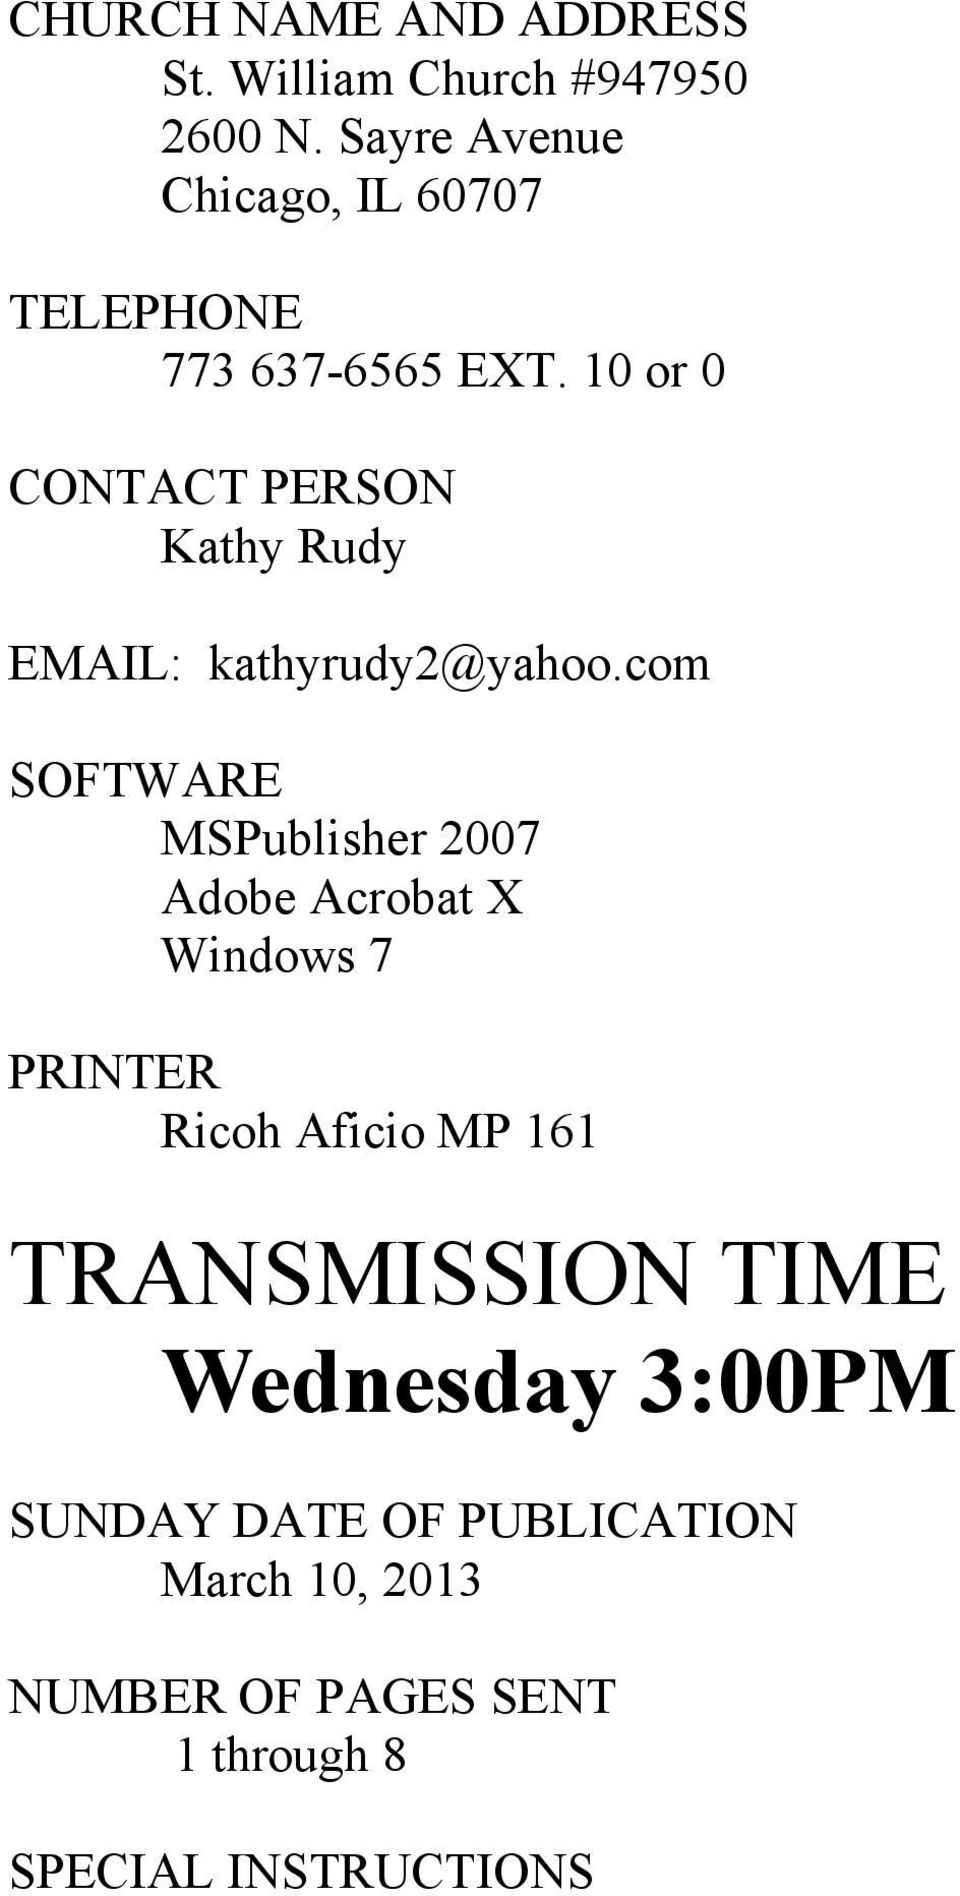 10 or 0 CONTACT PERSON Kathy Rudy EMAIL: kathyrudy2@yahoo.